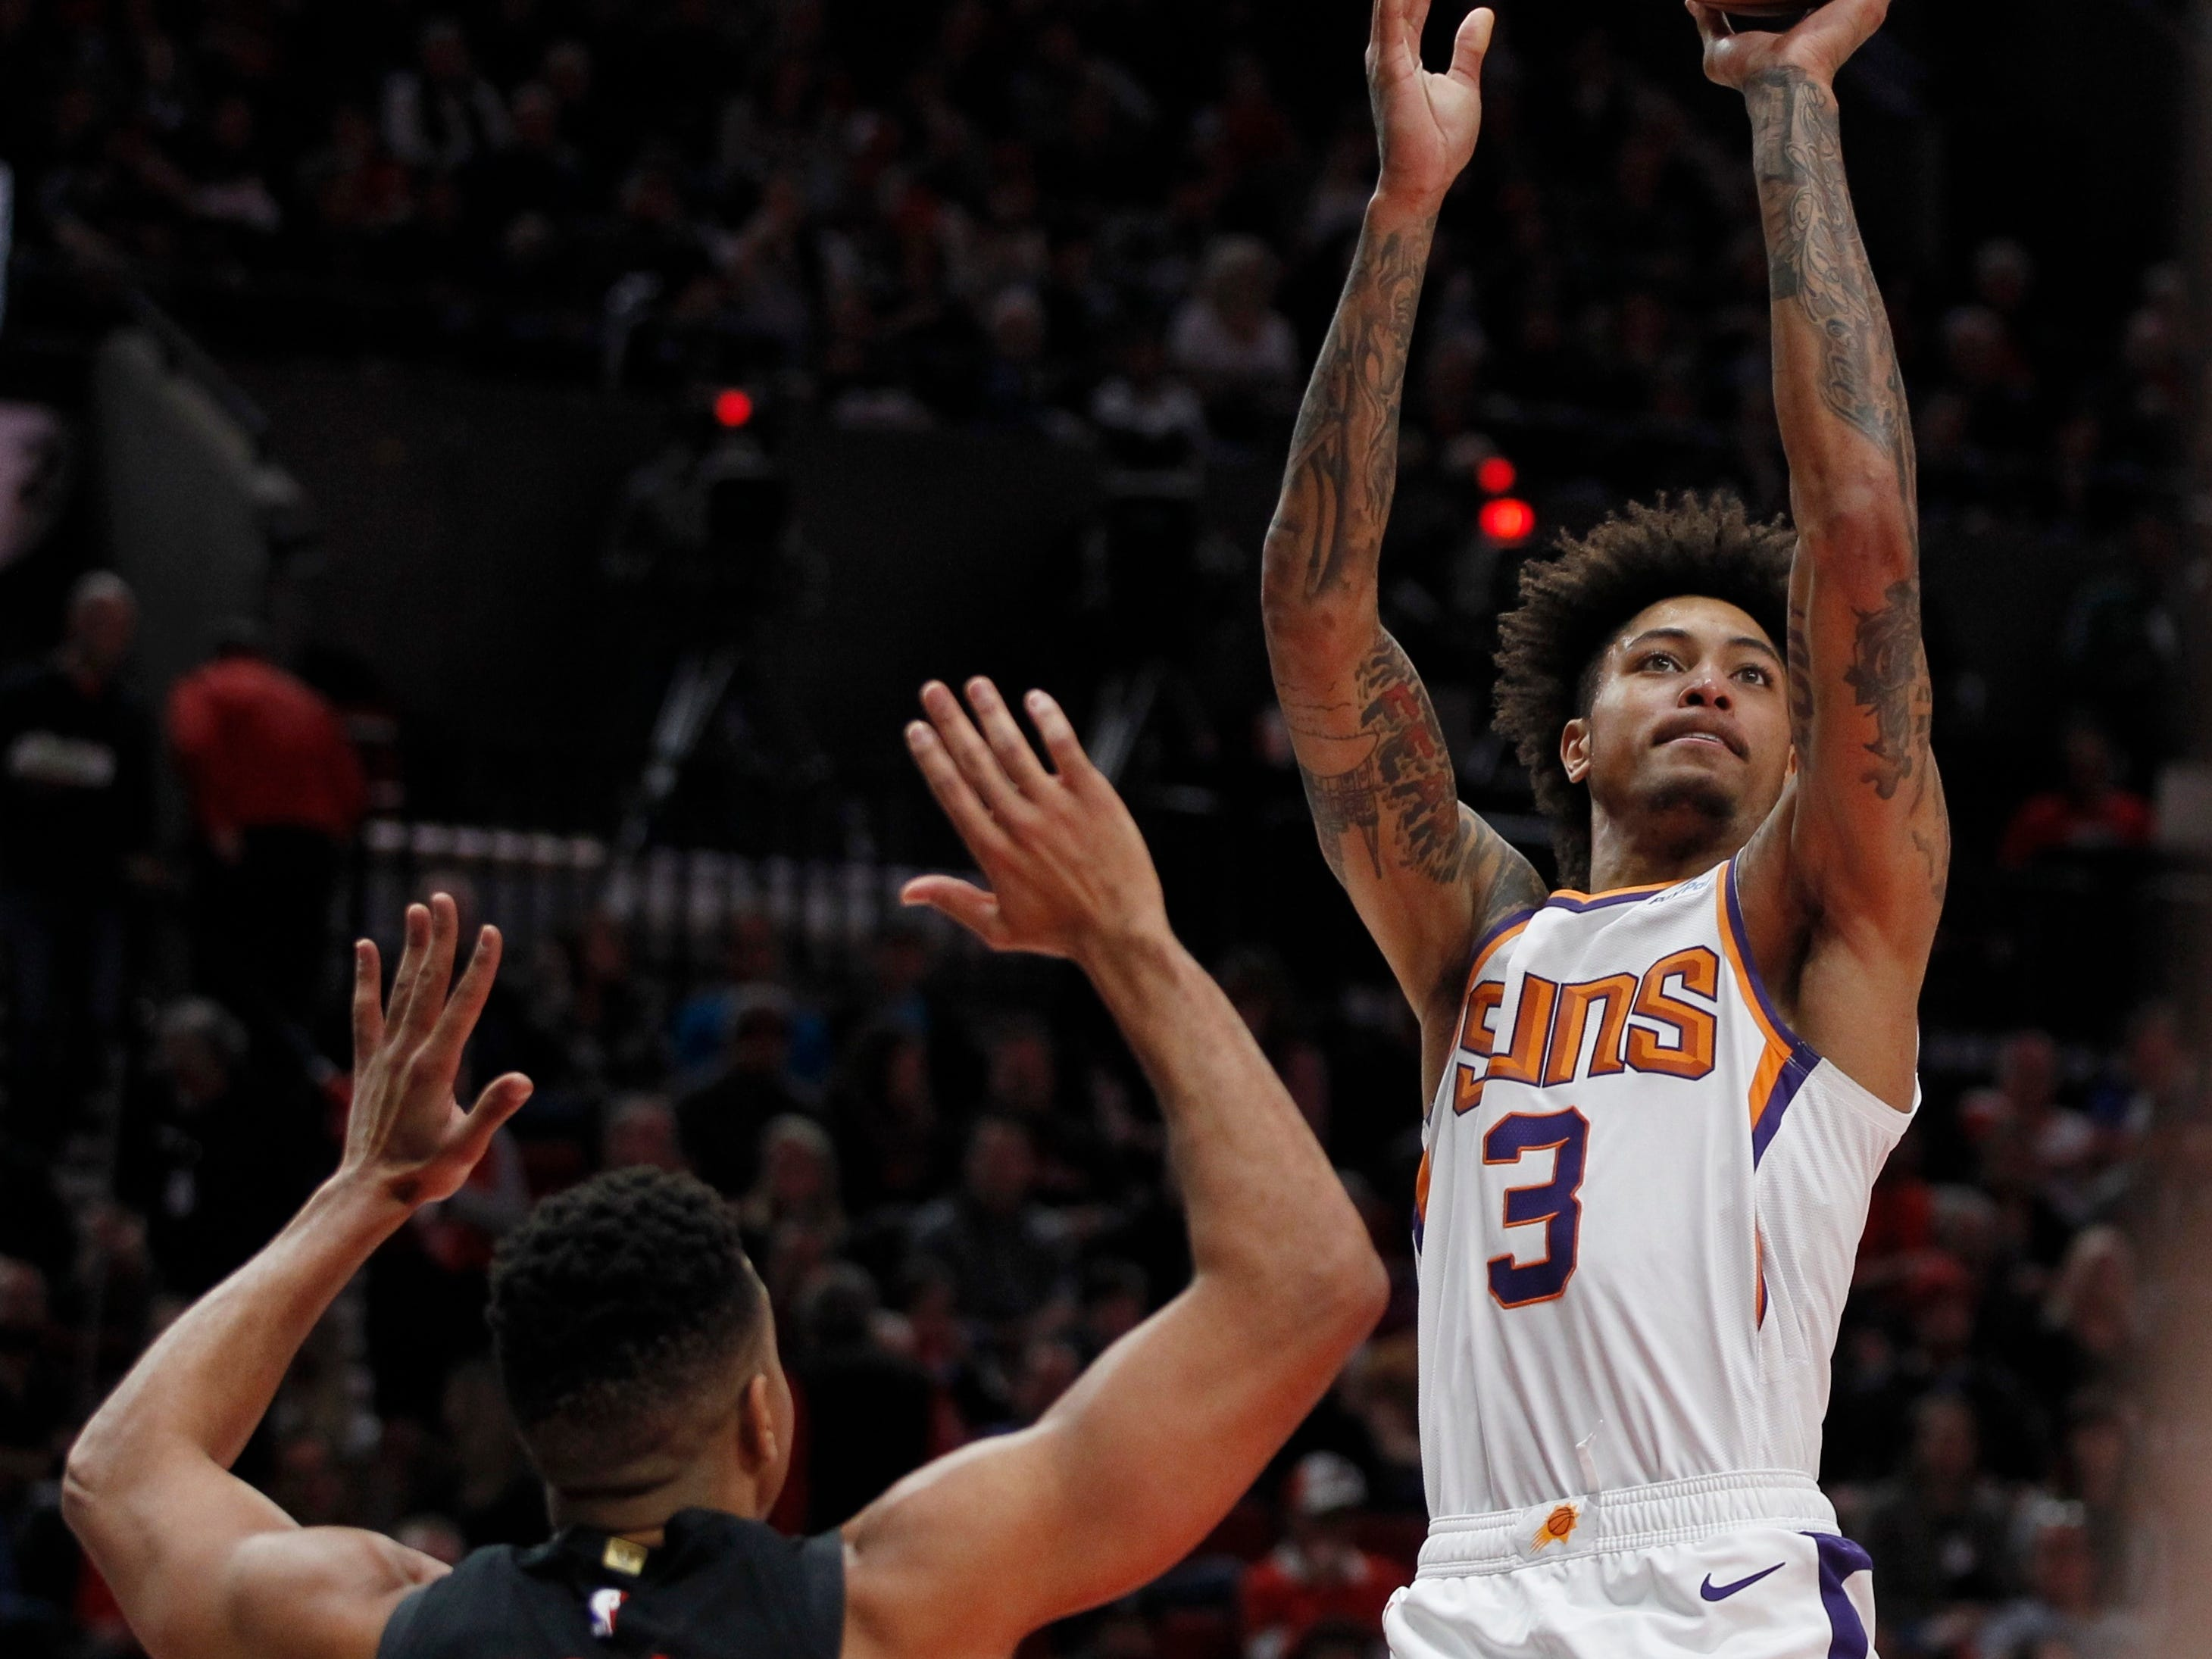 Phoenix Suns forward Kelly Oubre Jr., right, shoots as Portland Trail Blazers guard CJ McCollum defends during the first half of an NBA basketball game in Portland, Ore., Saturday, March 9, 2019.